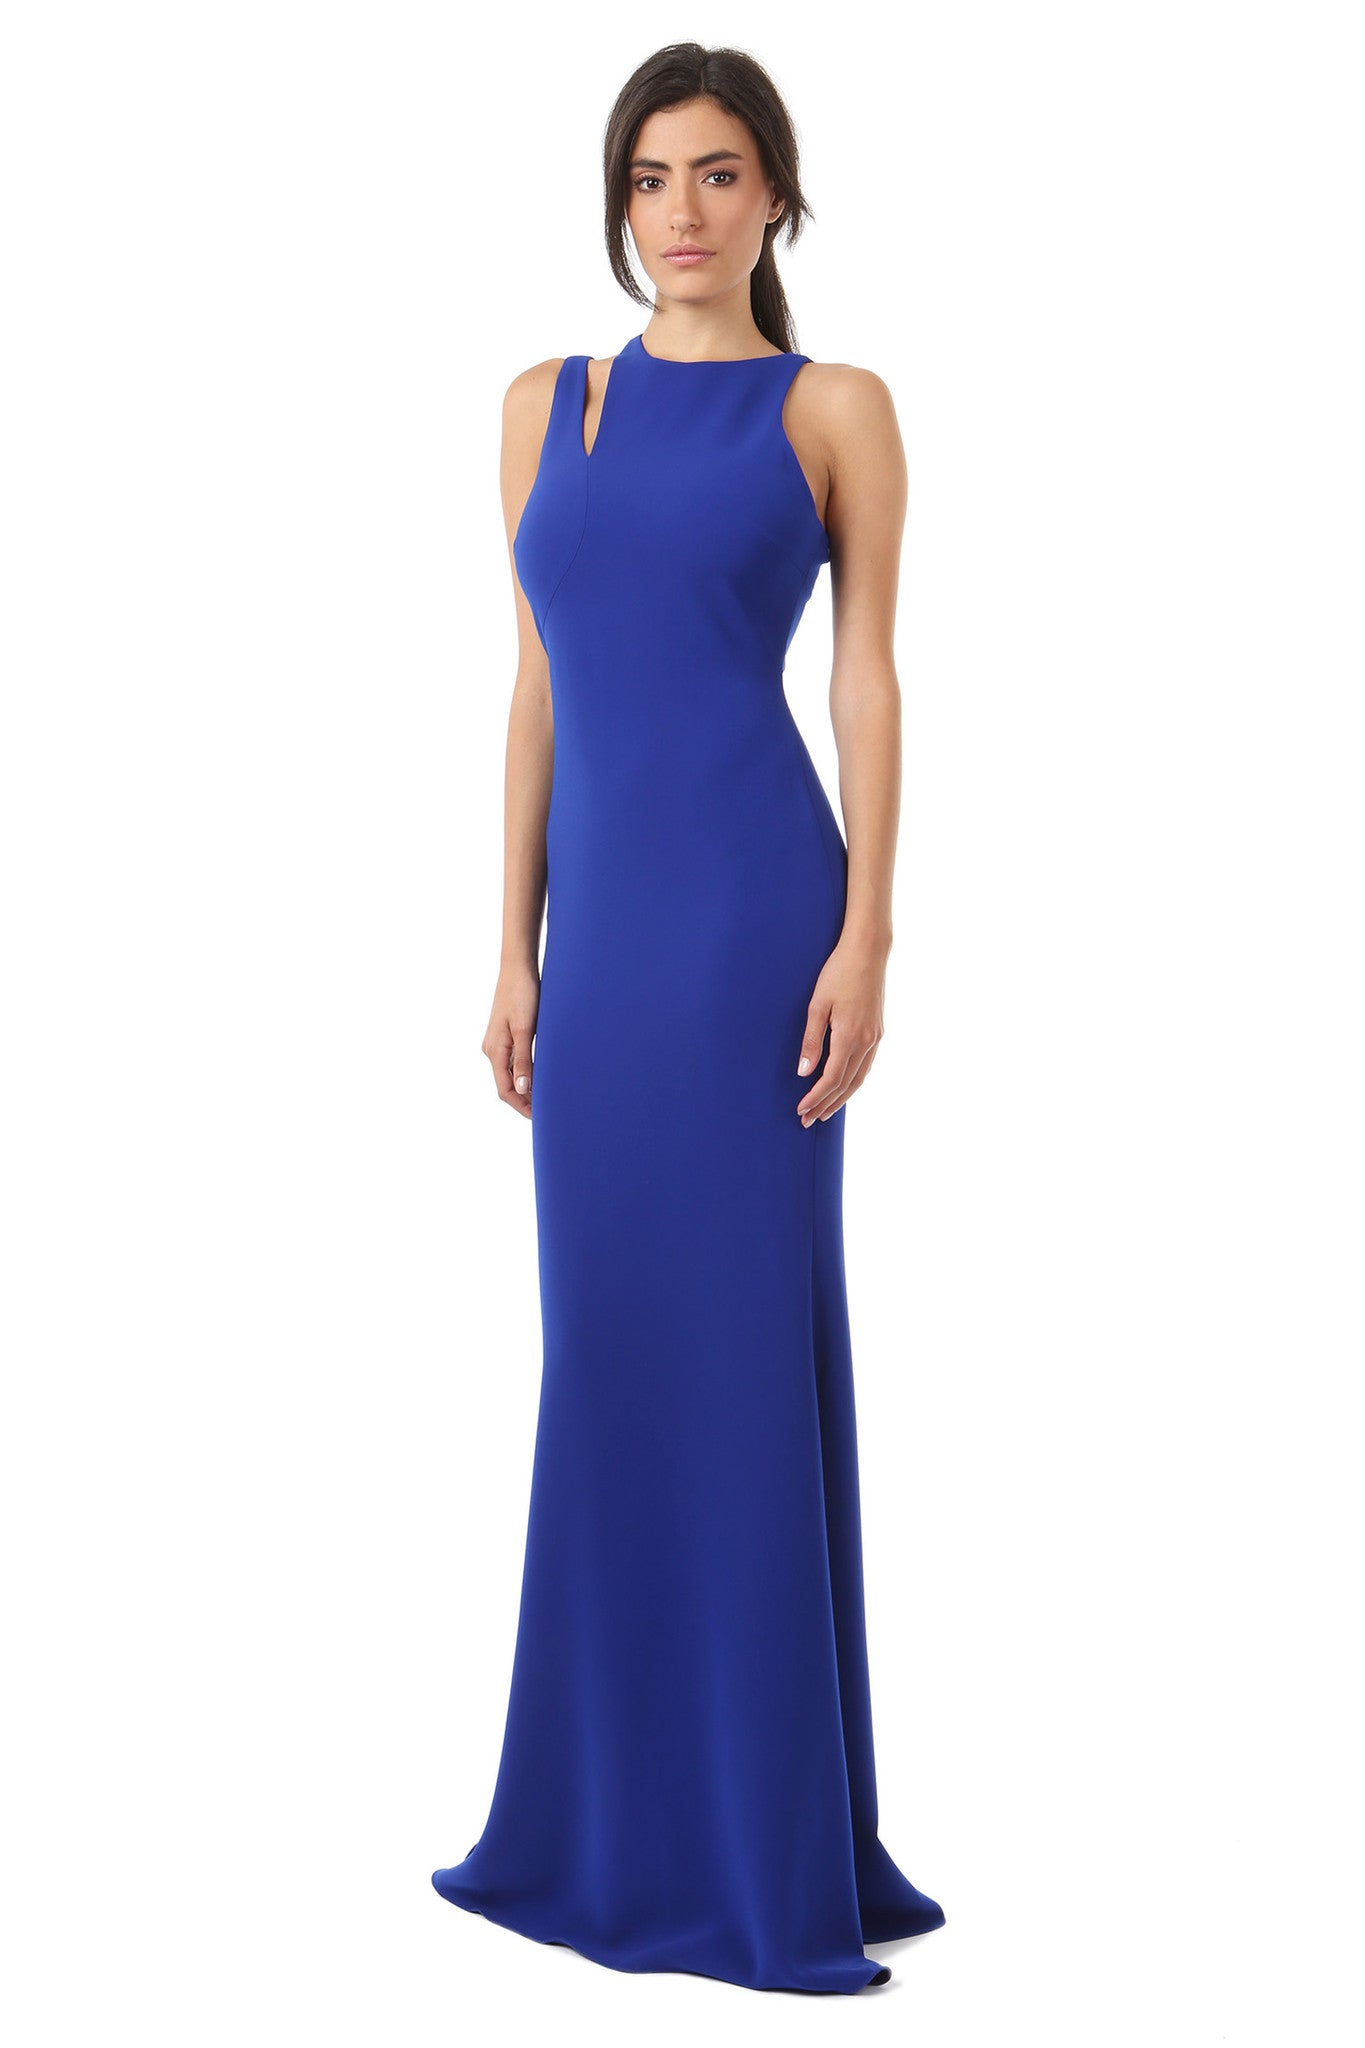 Jay Godfrey Cobalt Shoulder Cut-Out Gown - Front View